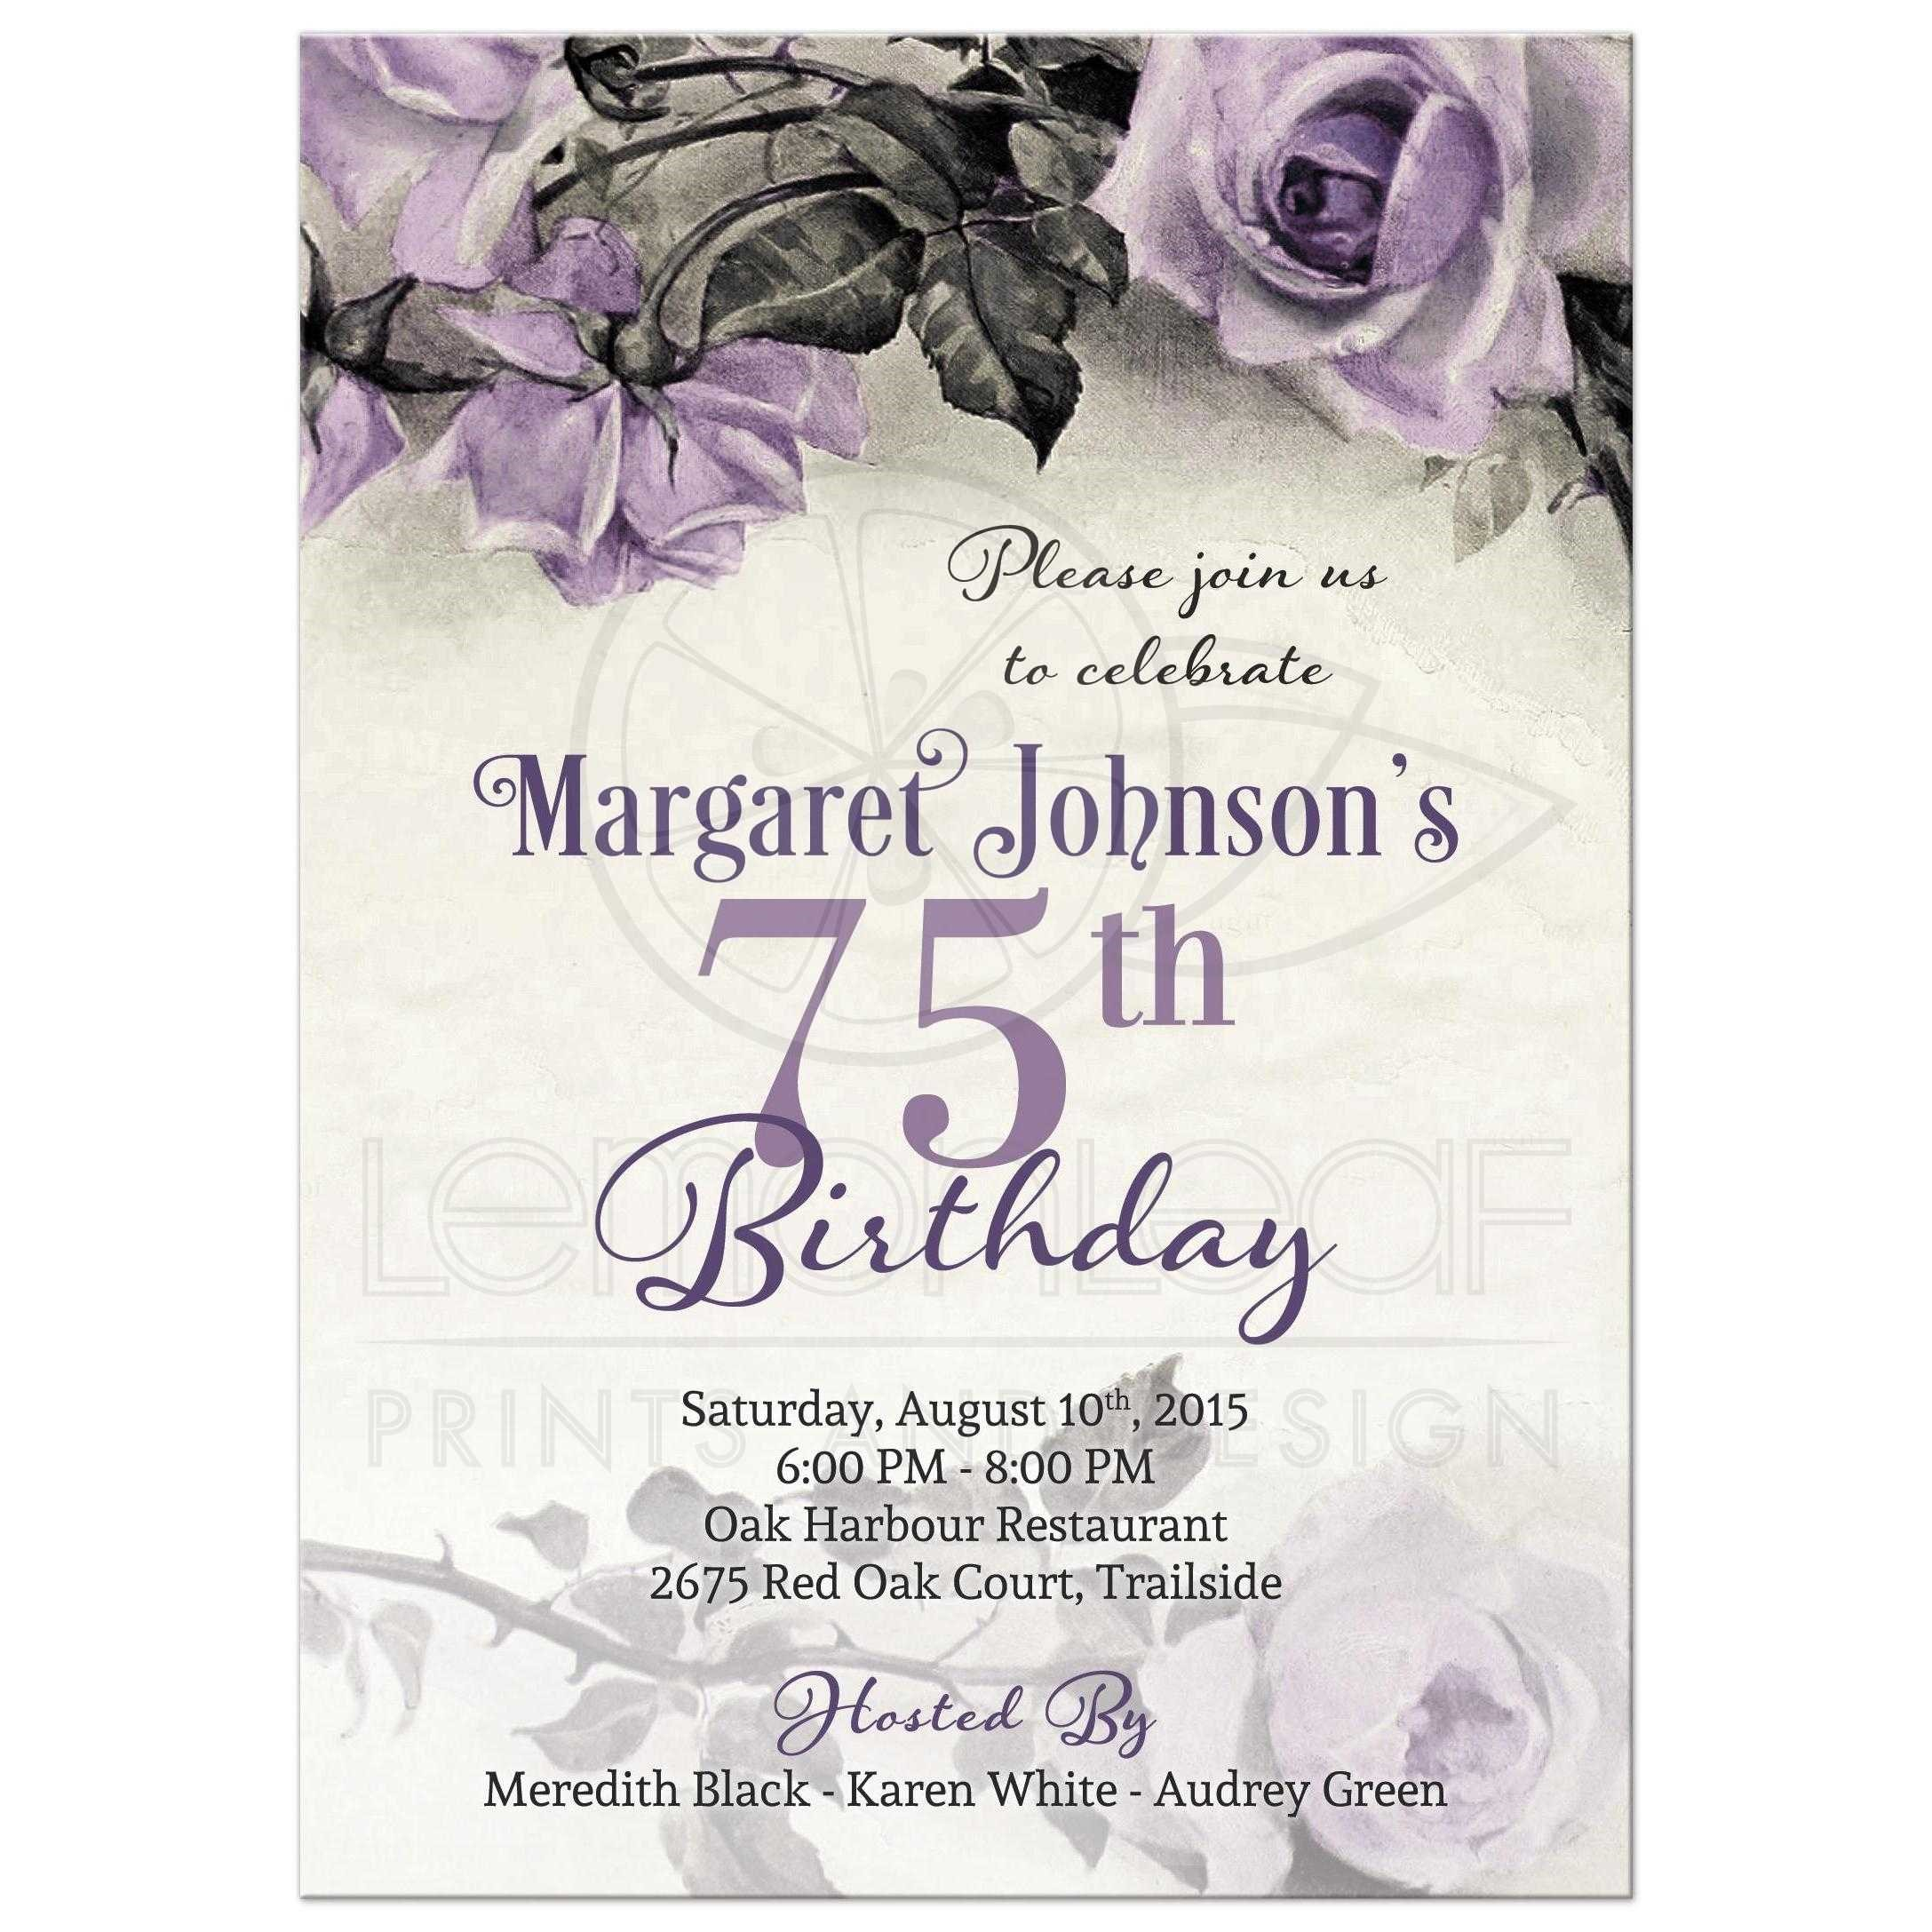 75th birthday invitations printable ; Stunning-75Th-Birthday-Invitations-For-Additional-Free-Printable-Birthday-Party-Invitations